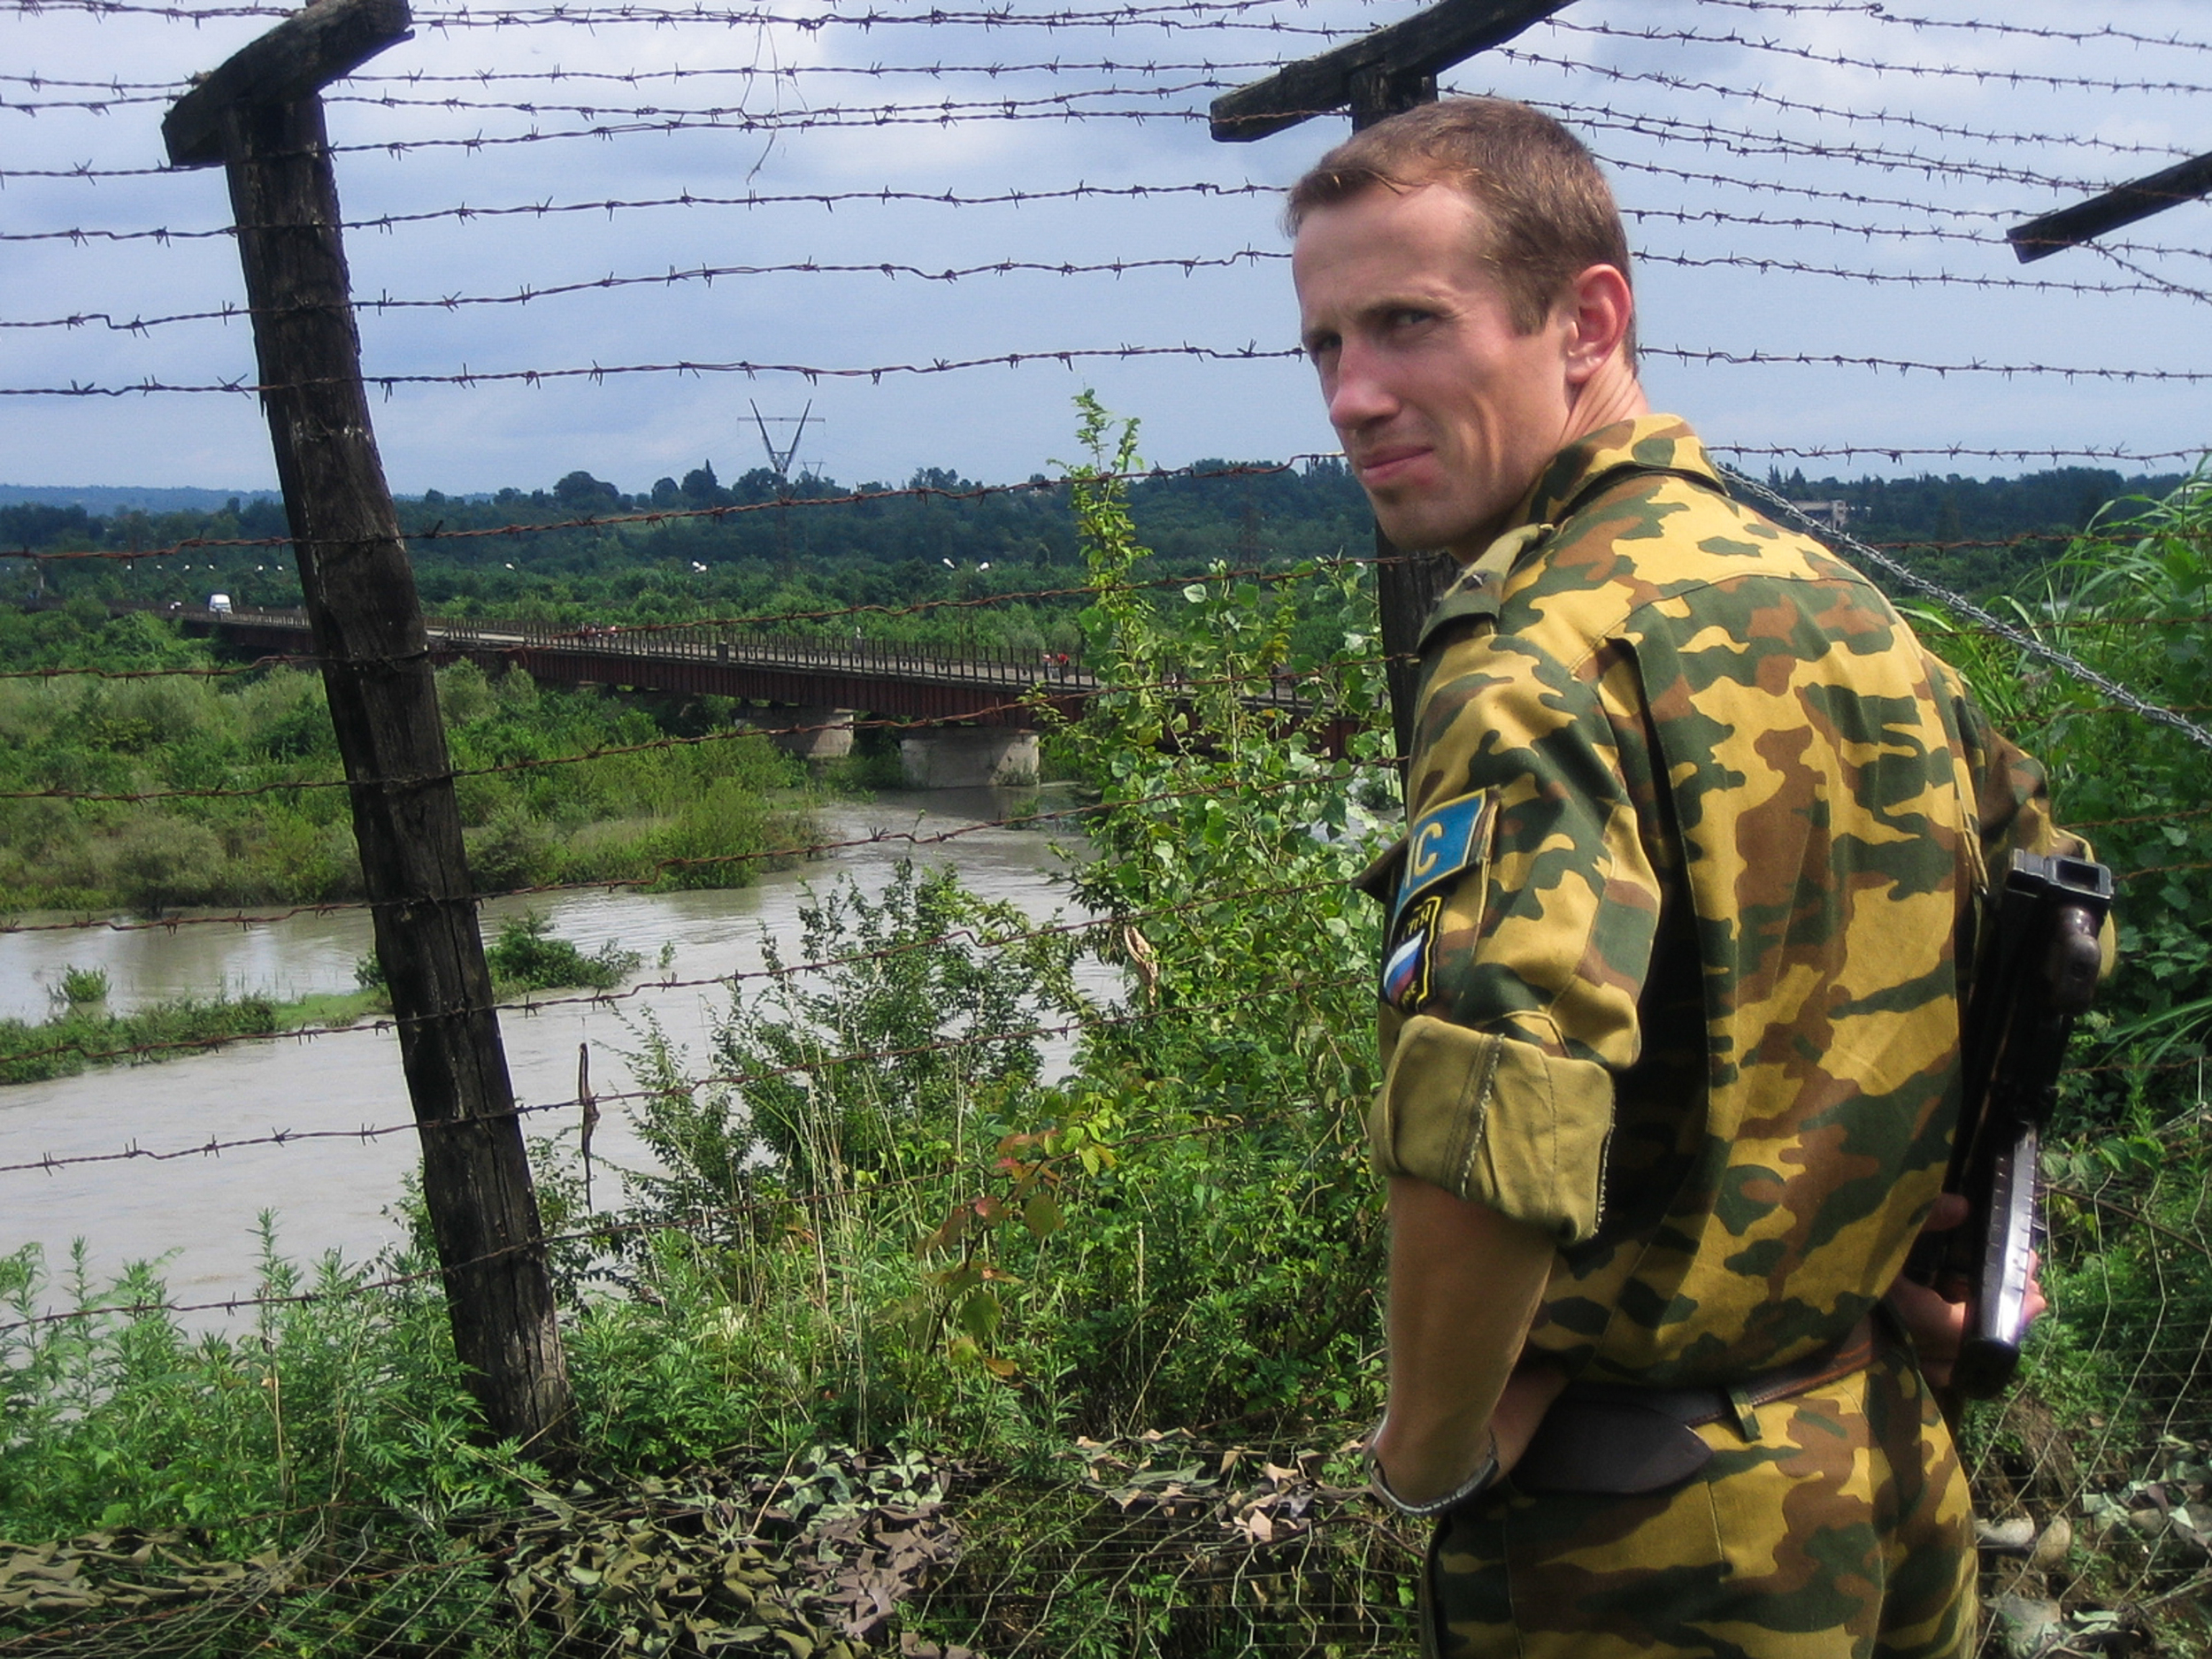 A Russian soldier officially serving as a peacekeeper in the heavily militarized border of the seperatist region of Abkhazia, which begins on his side of the Ergneti Bridge. The region is still internationally recognized as part of the Republic of Georgia but has de facto independence, albeit heavily reliant of Russian aid.